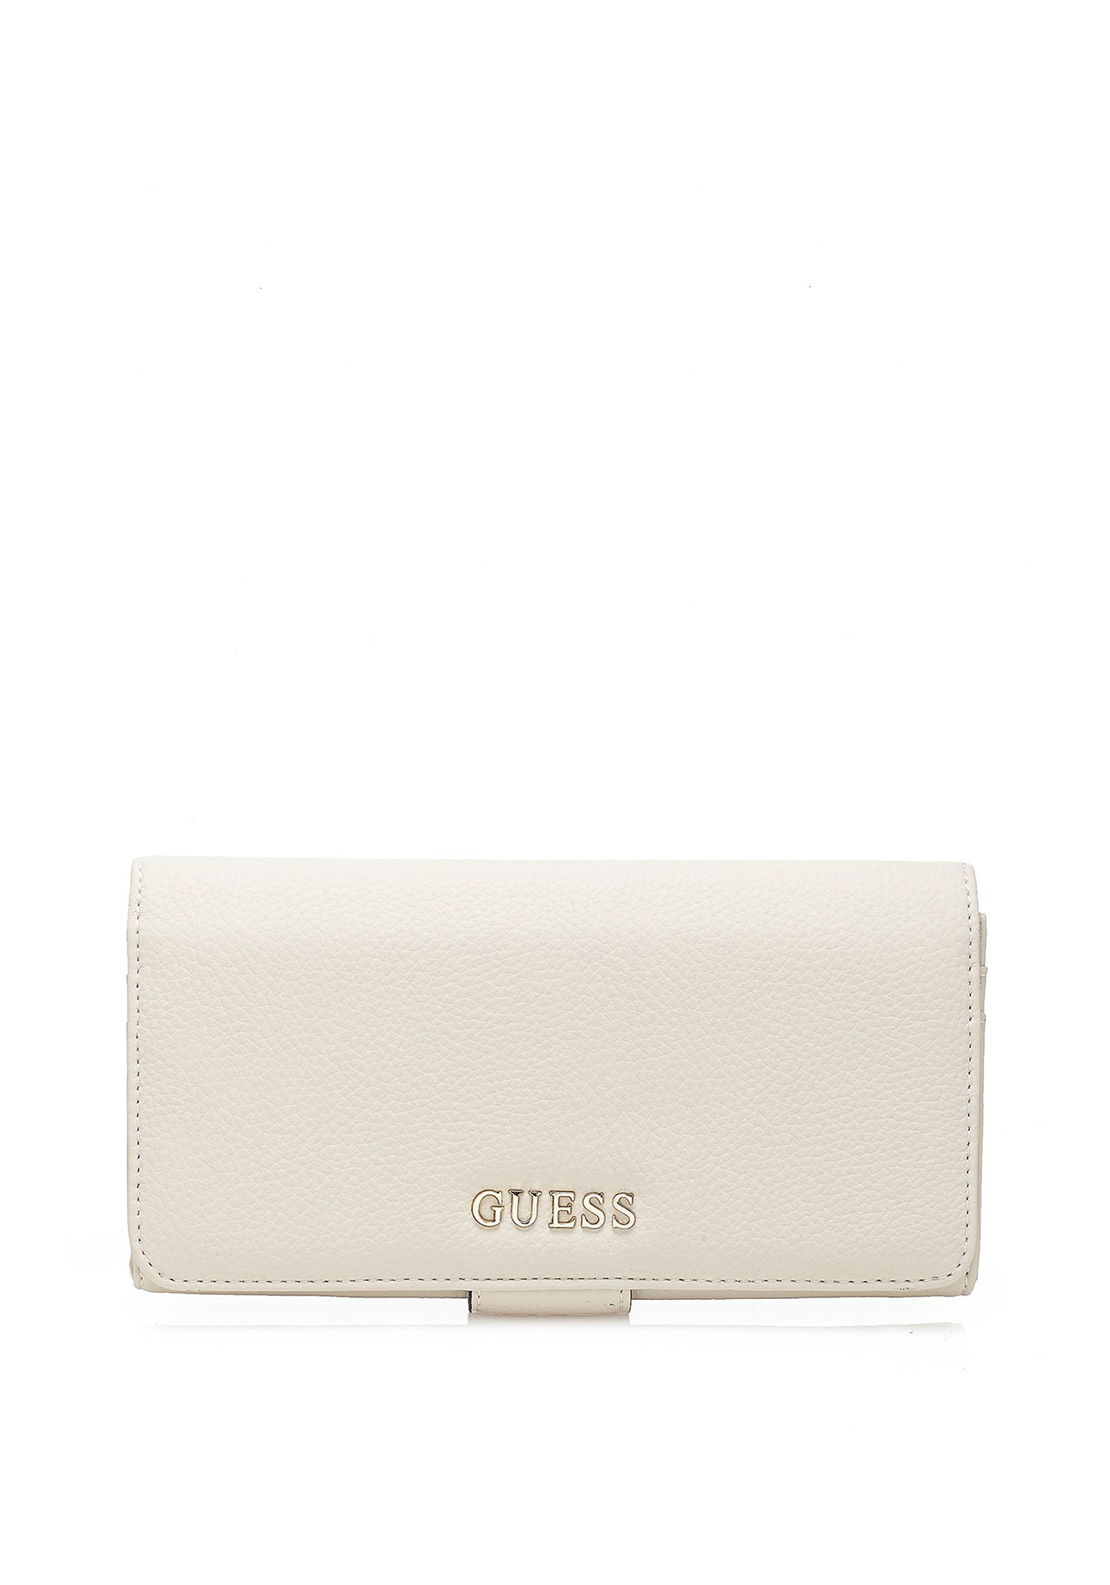 Guess Sissi Wallet, Cream